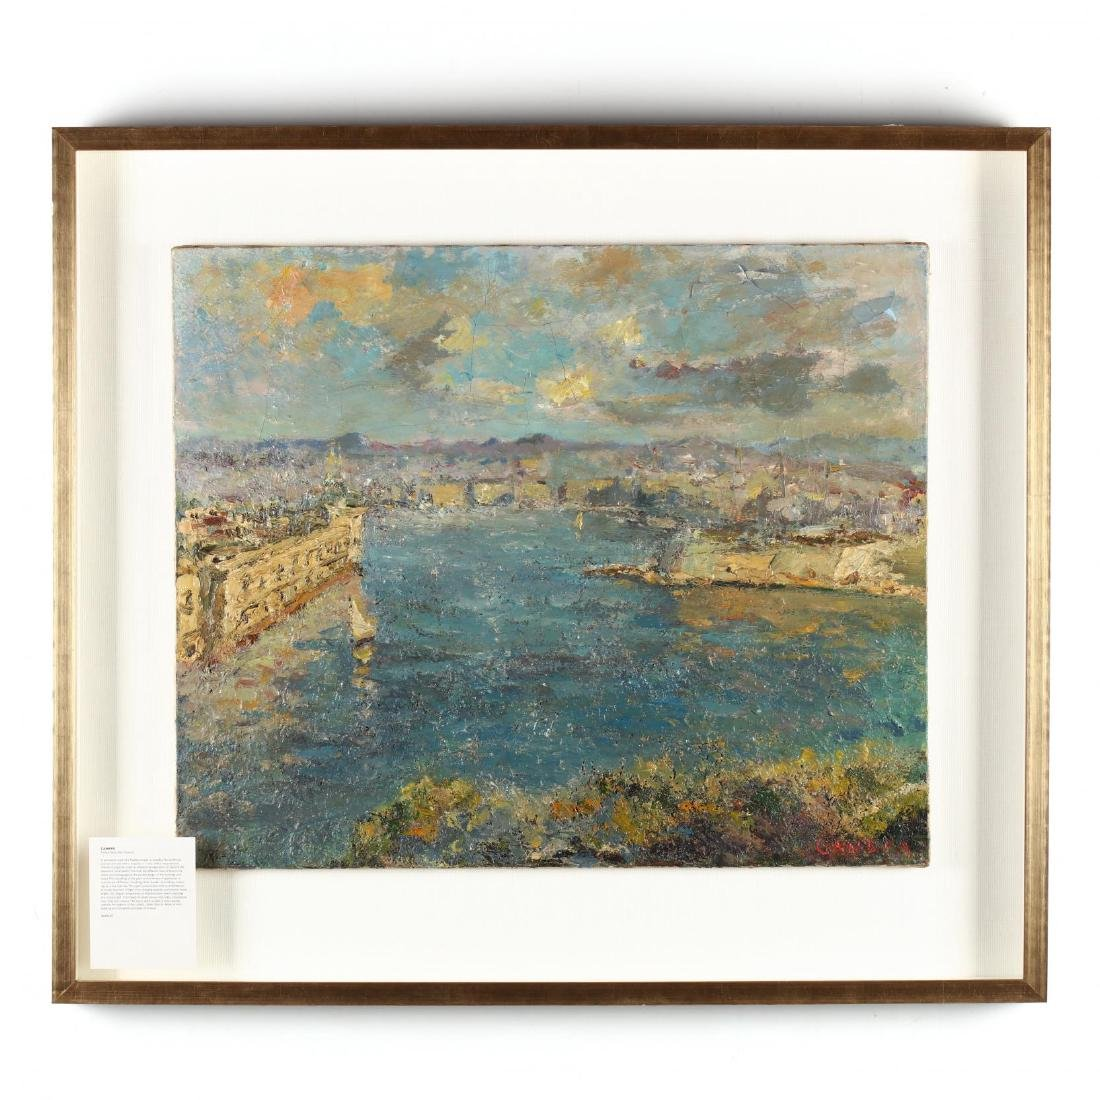 An Antique Painting of the French Mediterranean